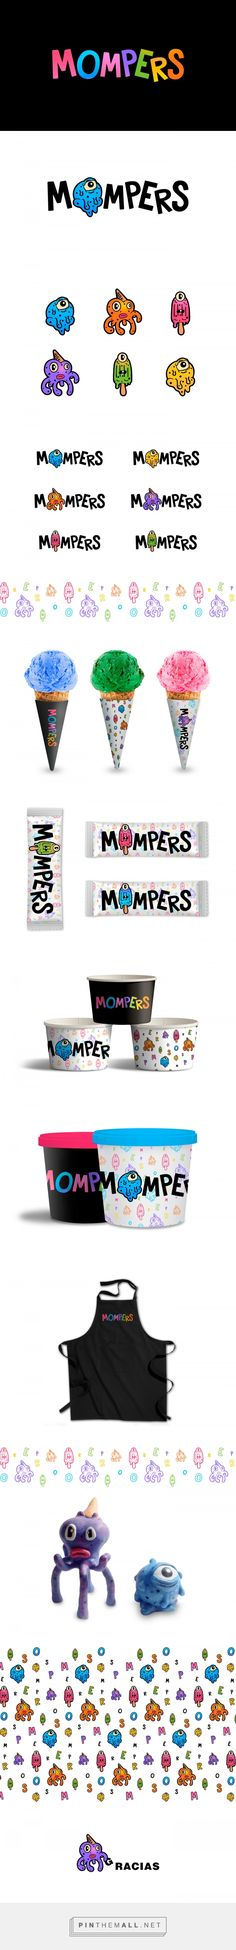 Mompers Children's Ice Cream Shop Branding and Packaging by Jose Pablo Ledesma   Fivestar Branding Agency – Design and Branding Agency & Curated Inspiration Gallery